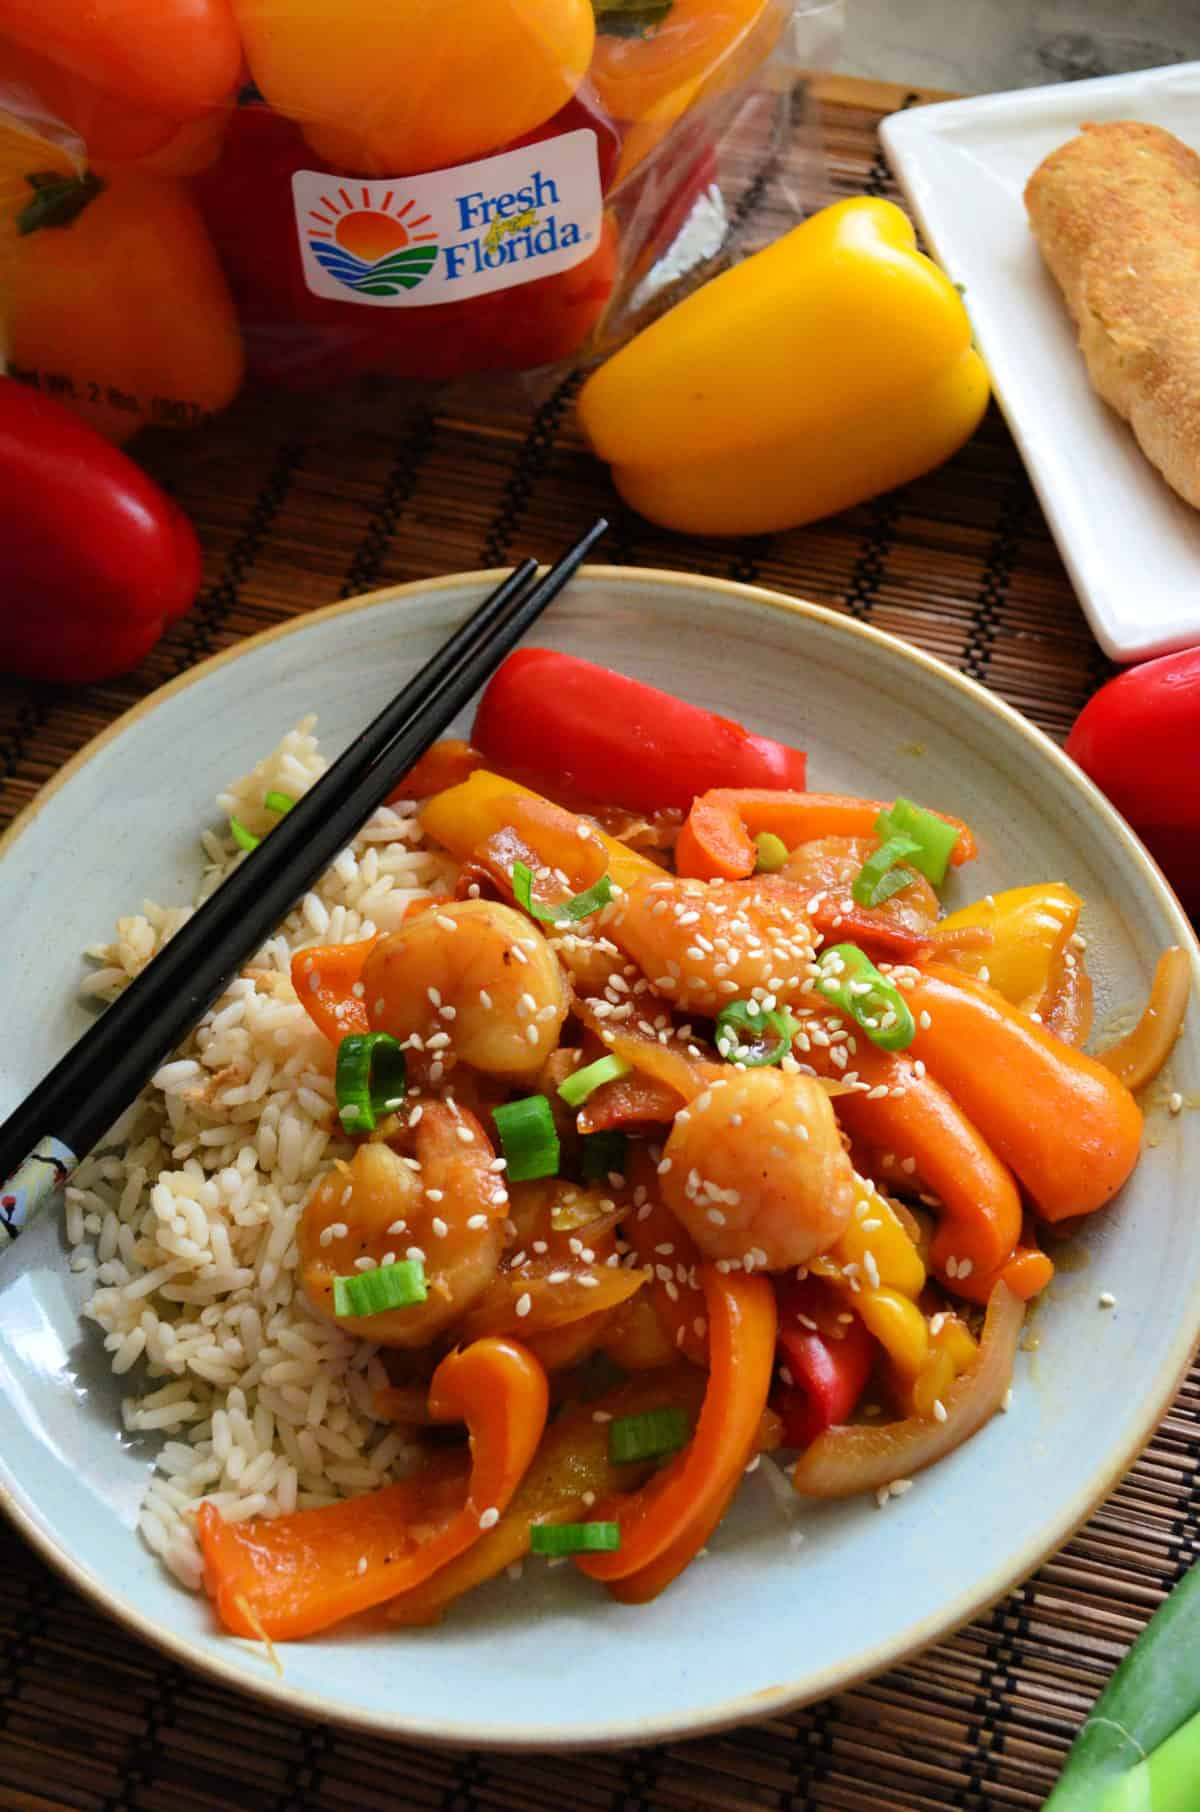 sauce, shrimp, peppers, green onions, and sesame seeds over plated rice bed with chopsticks.